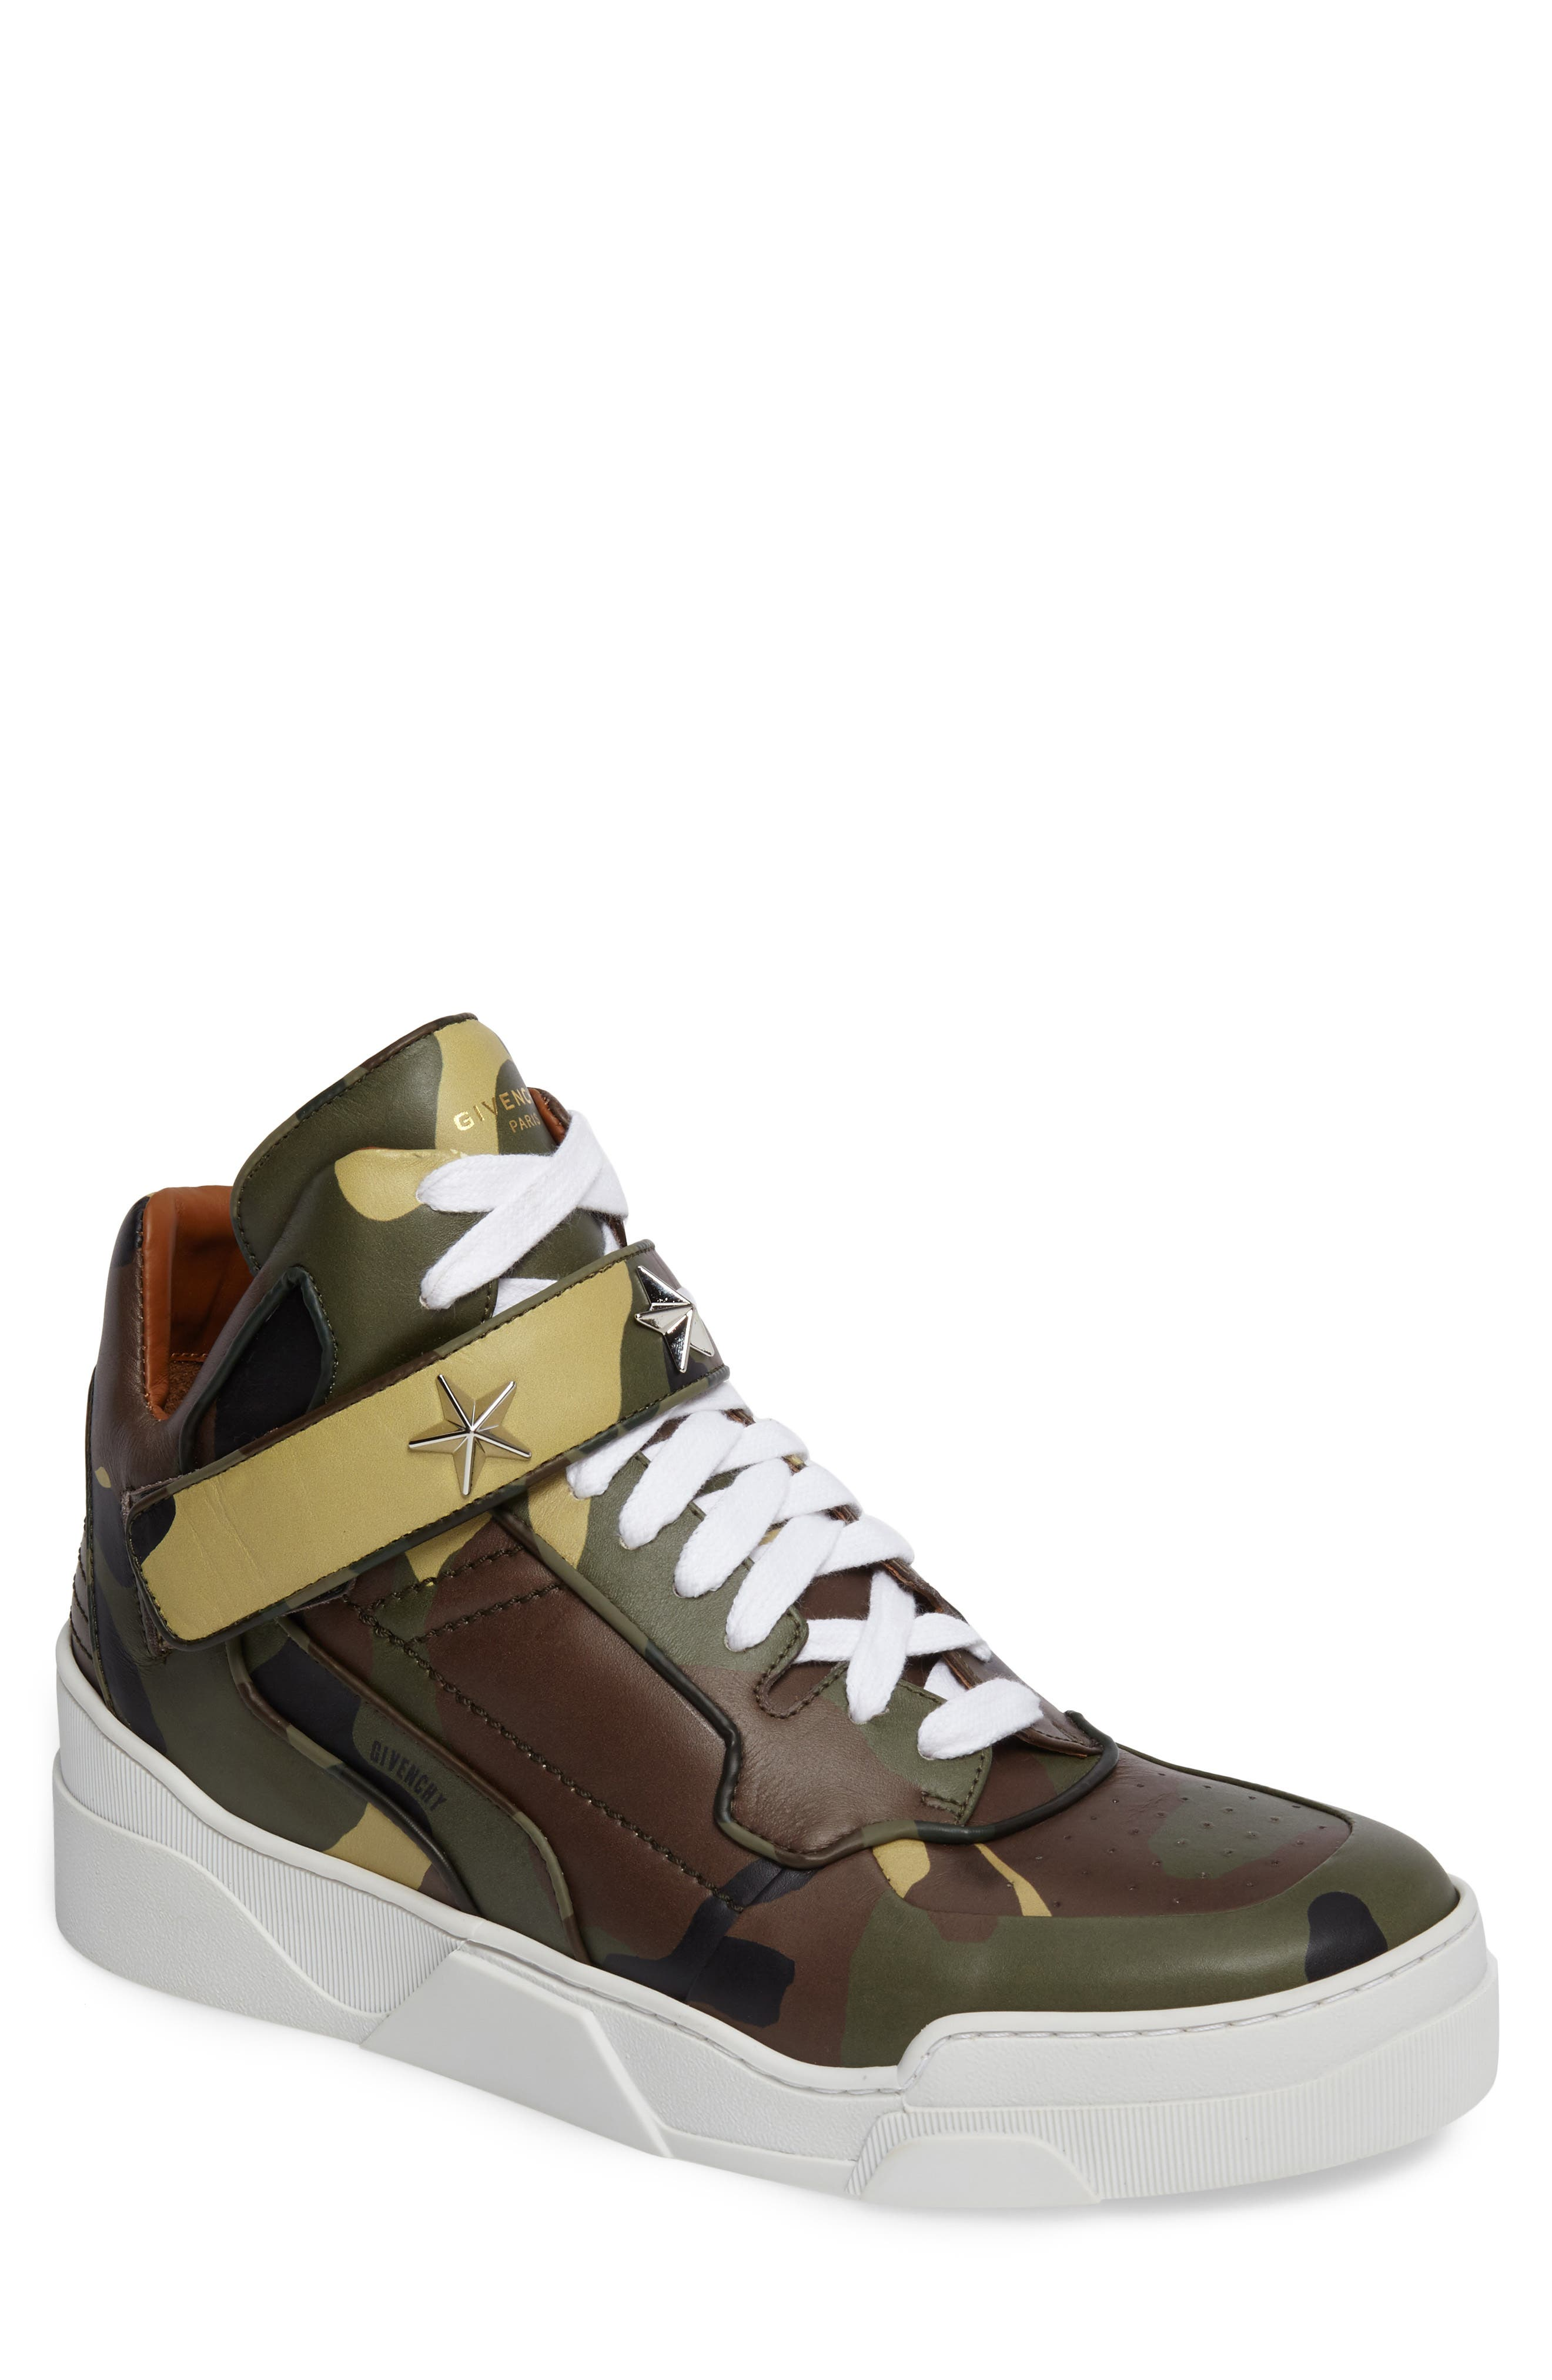 Alternate Image 1 Selected - Givenchy 'Tyson' High Top Sneaker (Men) (Nordstrom Exclusive)